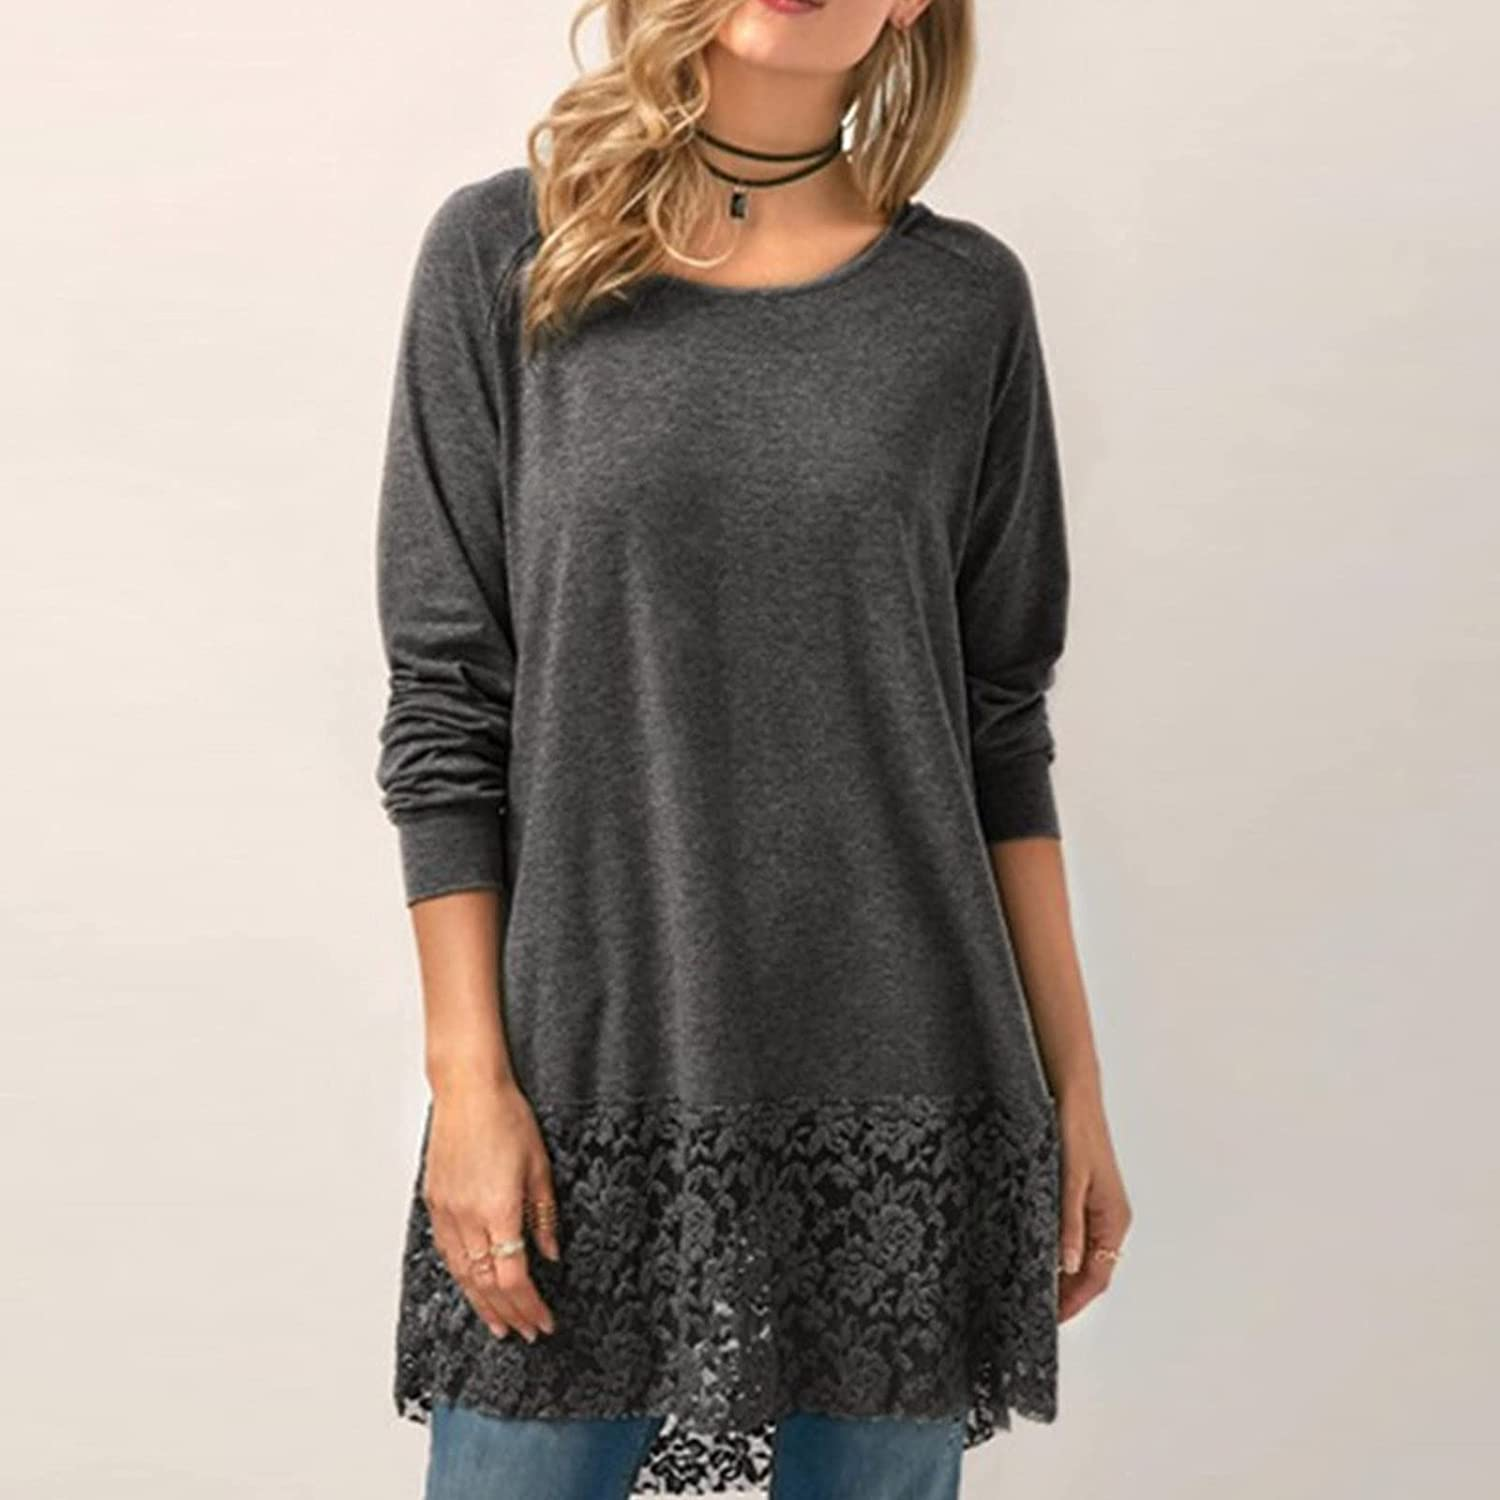 Women's Solid Color Tops Long Flowy T Shirt Round Neck Short Sleeve Tee Tunics for Women to Wear with Leggings Dressy